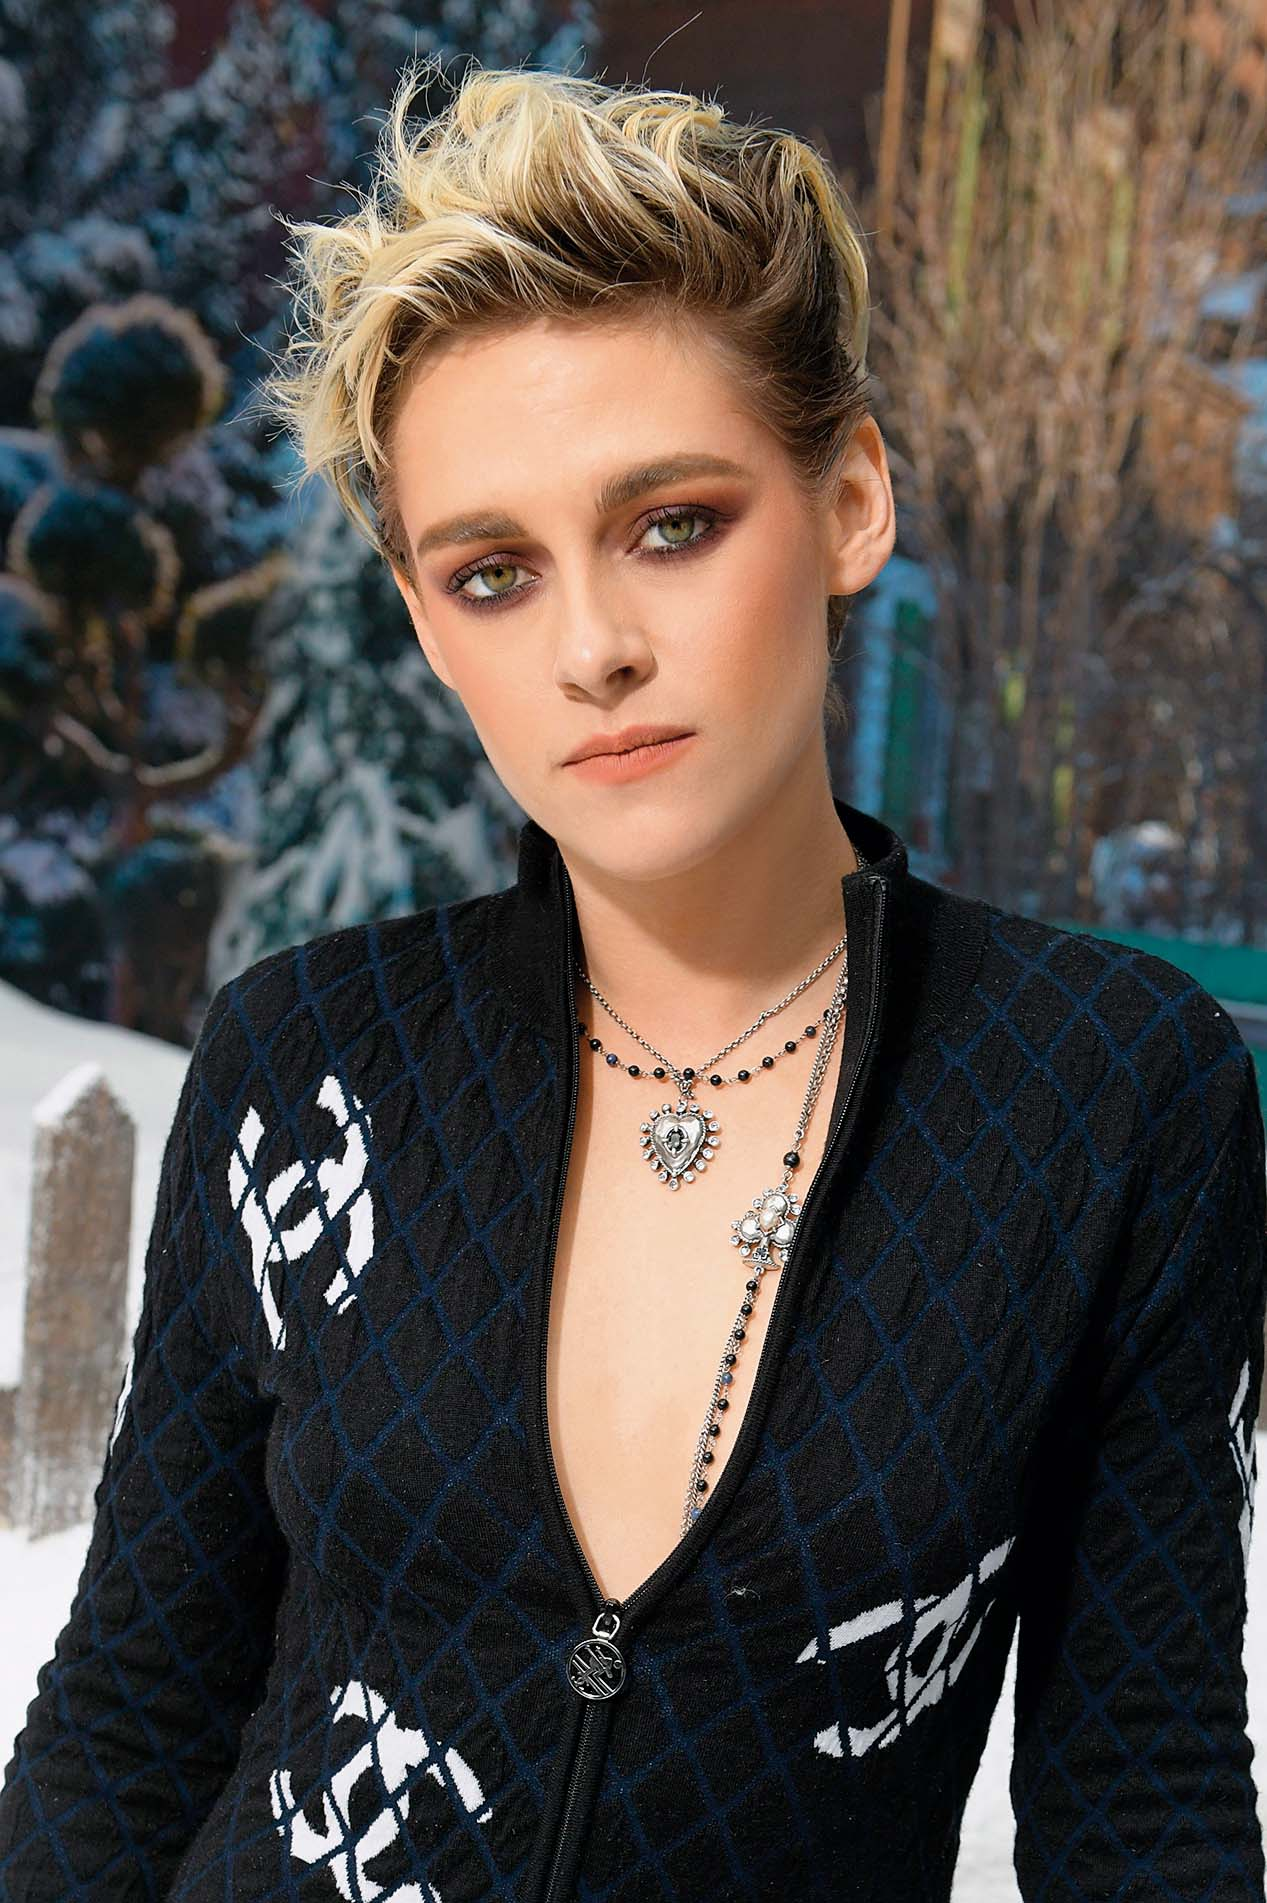 Kristen Stewart in the front row Chanel show, Front Row, Fall Winter 2019, Paris Fashion Week, France - 05 Mar 2019, Image: 417331728, License: Rights-managed, Restrictions: , Model Release: no, Credit line: Profimedia, TEMP Rex Features